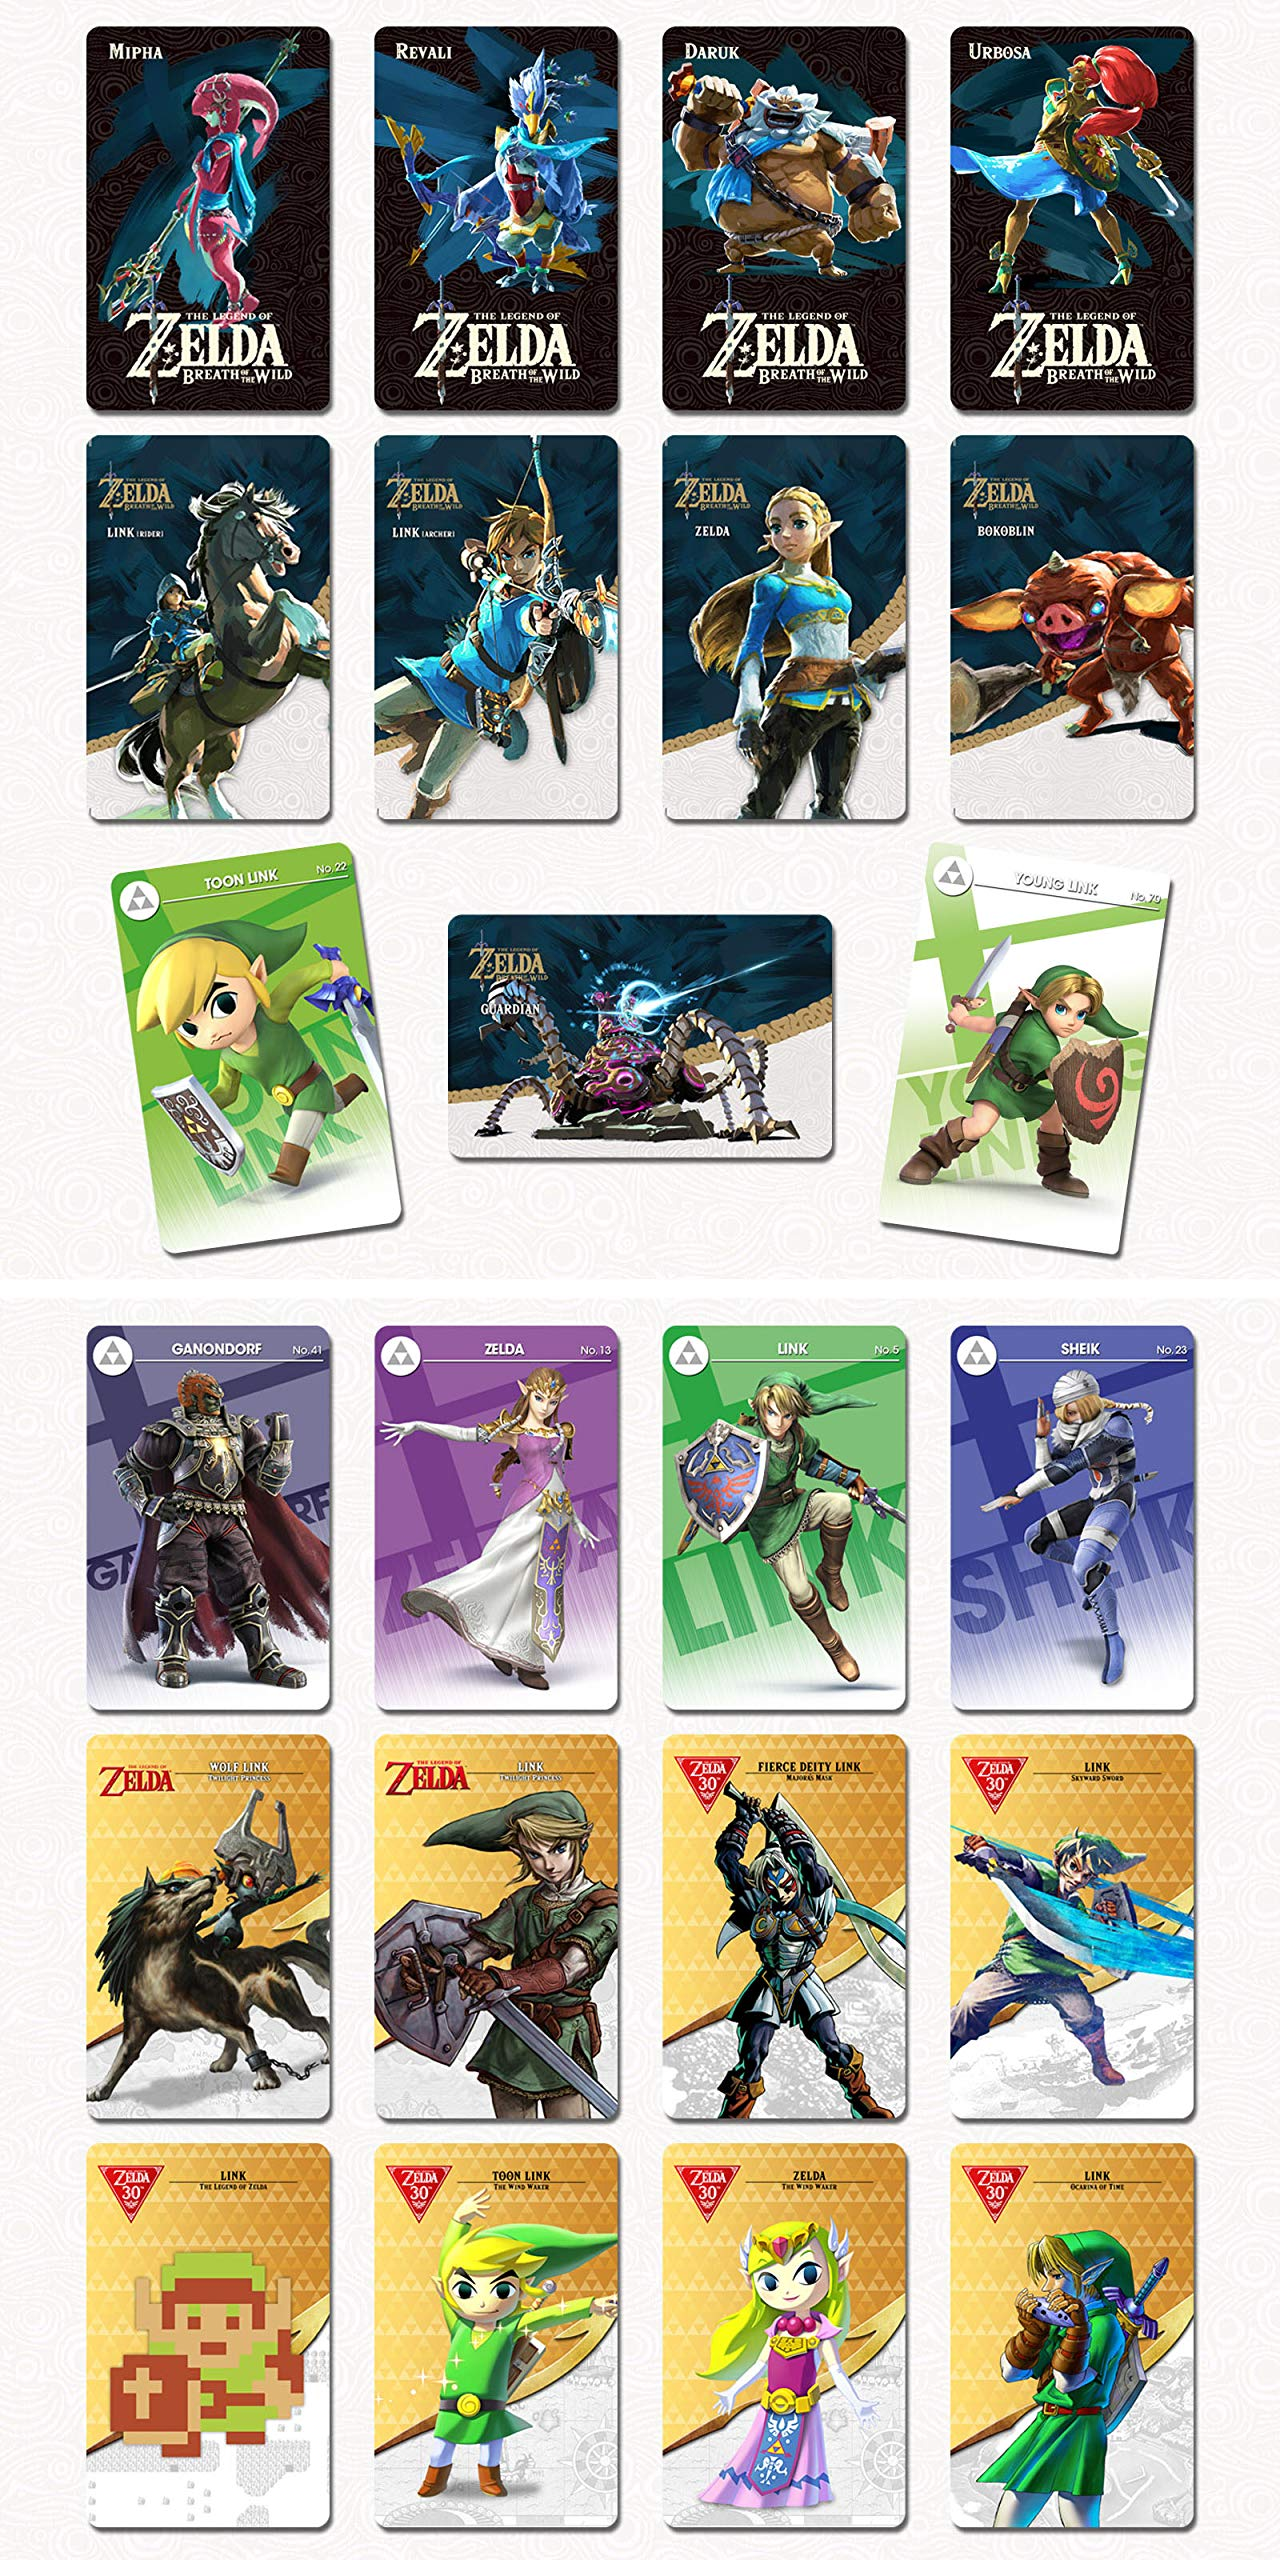 NFC Game Cards for Nintendo Switch & Wii U & New 3DS The Legend of Zelda BOTW Set of 23Pcs